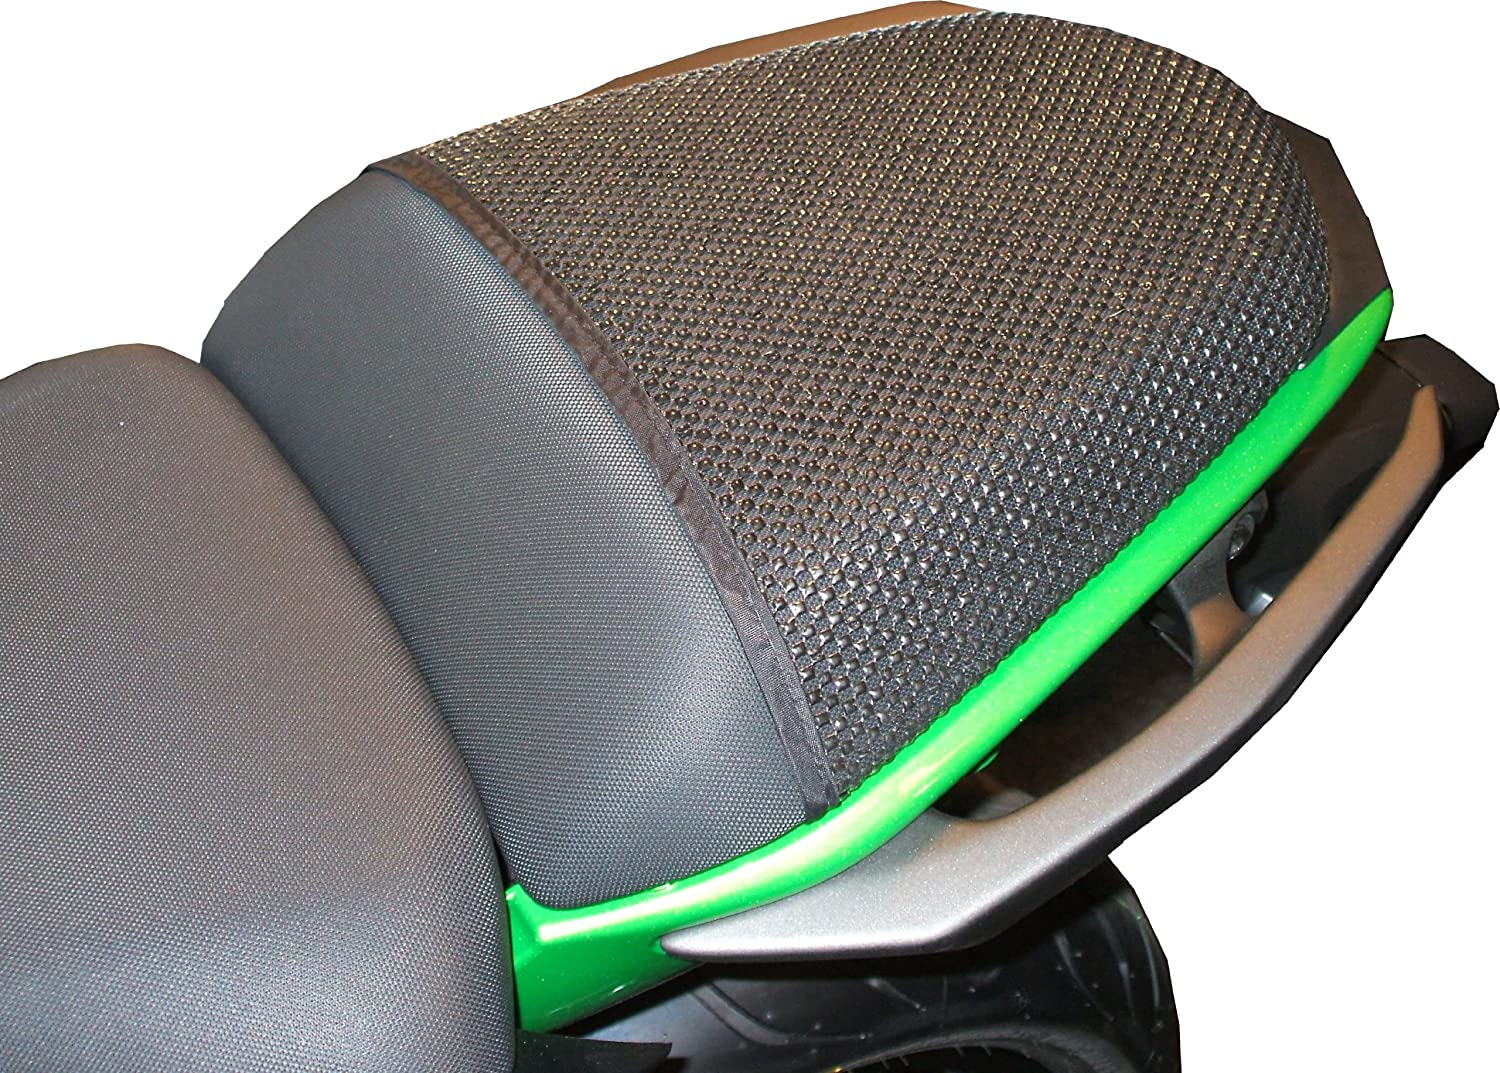 KAWASAKI ER6F (2012-2016) TRIBOSEAT COPRISELLA PASSEGGERO ANTISCIVOLO NERO ADVANCED SEATING TECHNOLOGY LIMITED